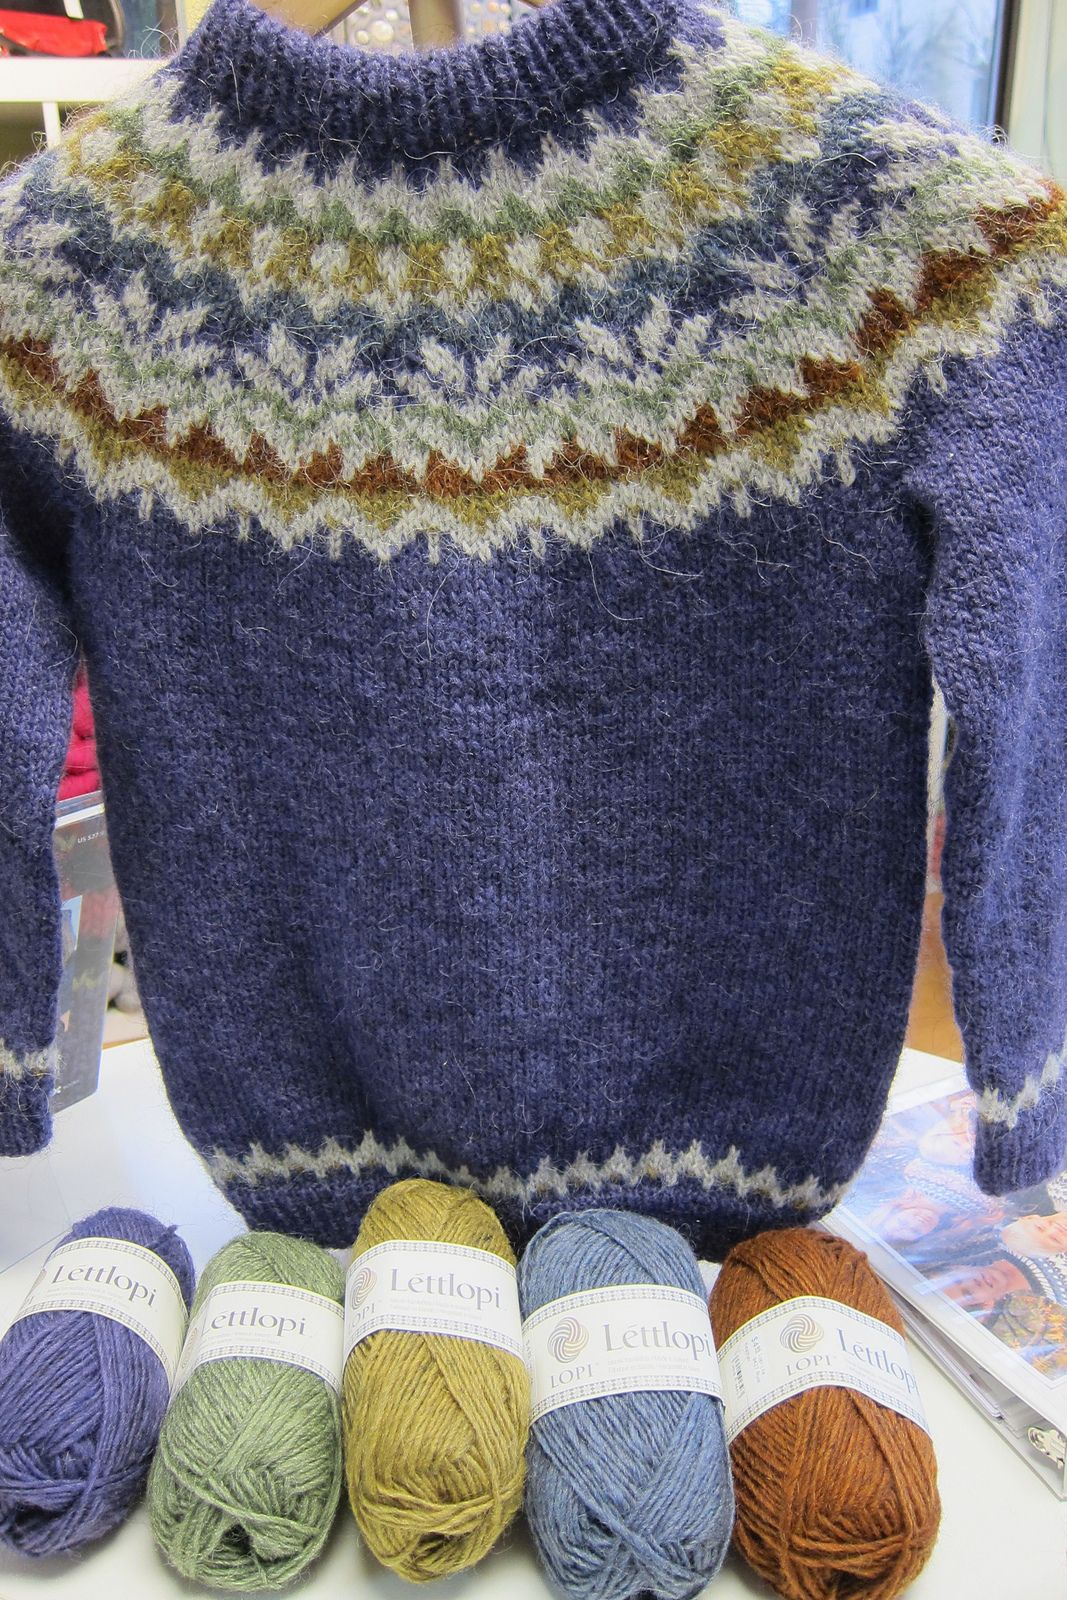 Afm 230 Li 20 Year Anniversary Sweater Pattern By V 233 D 237 S